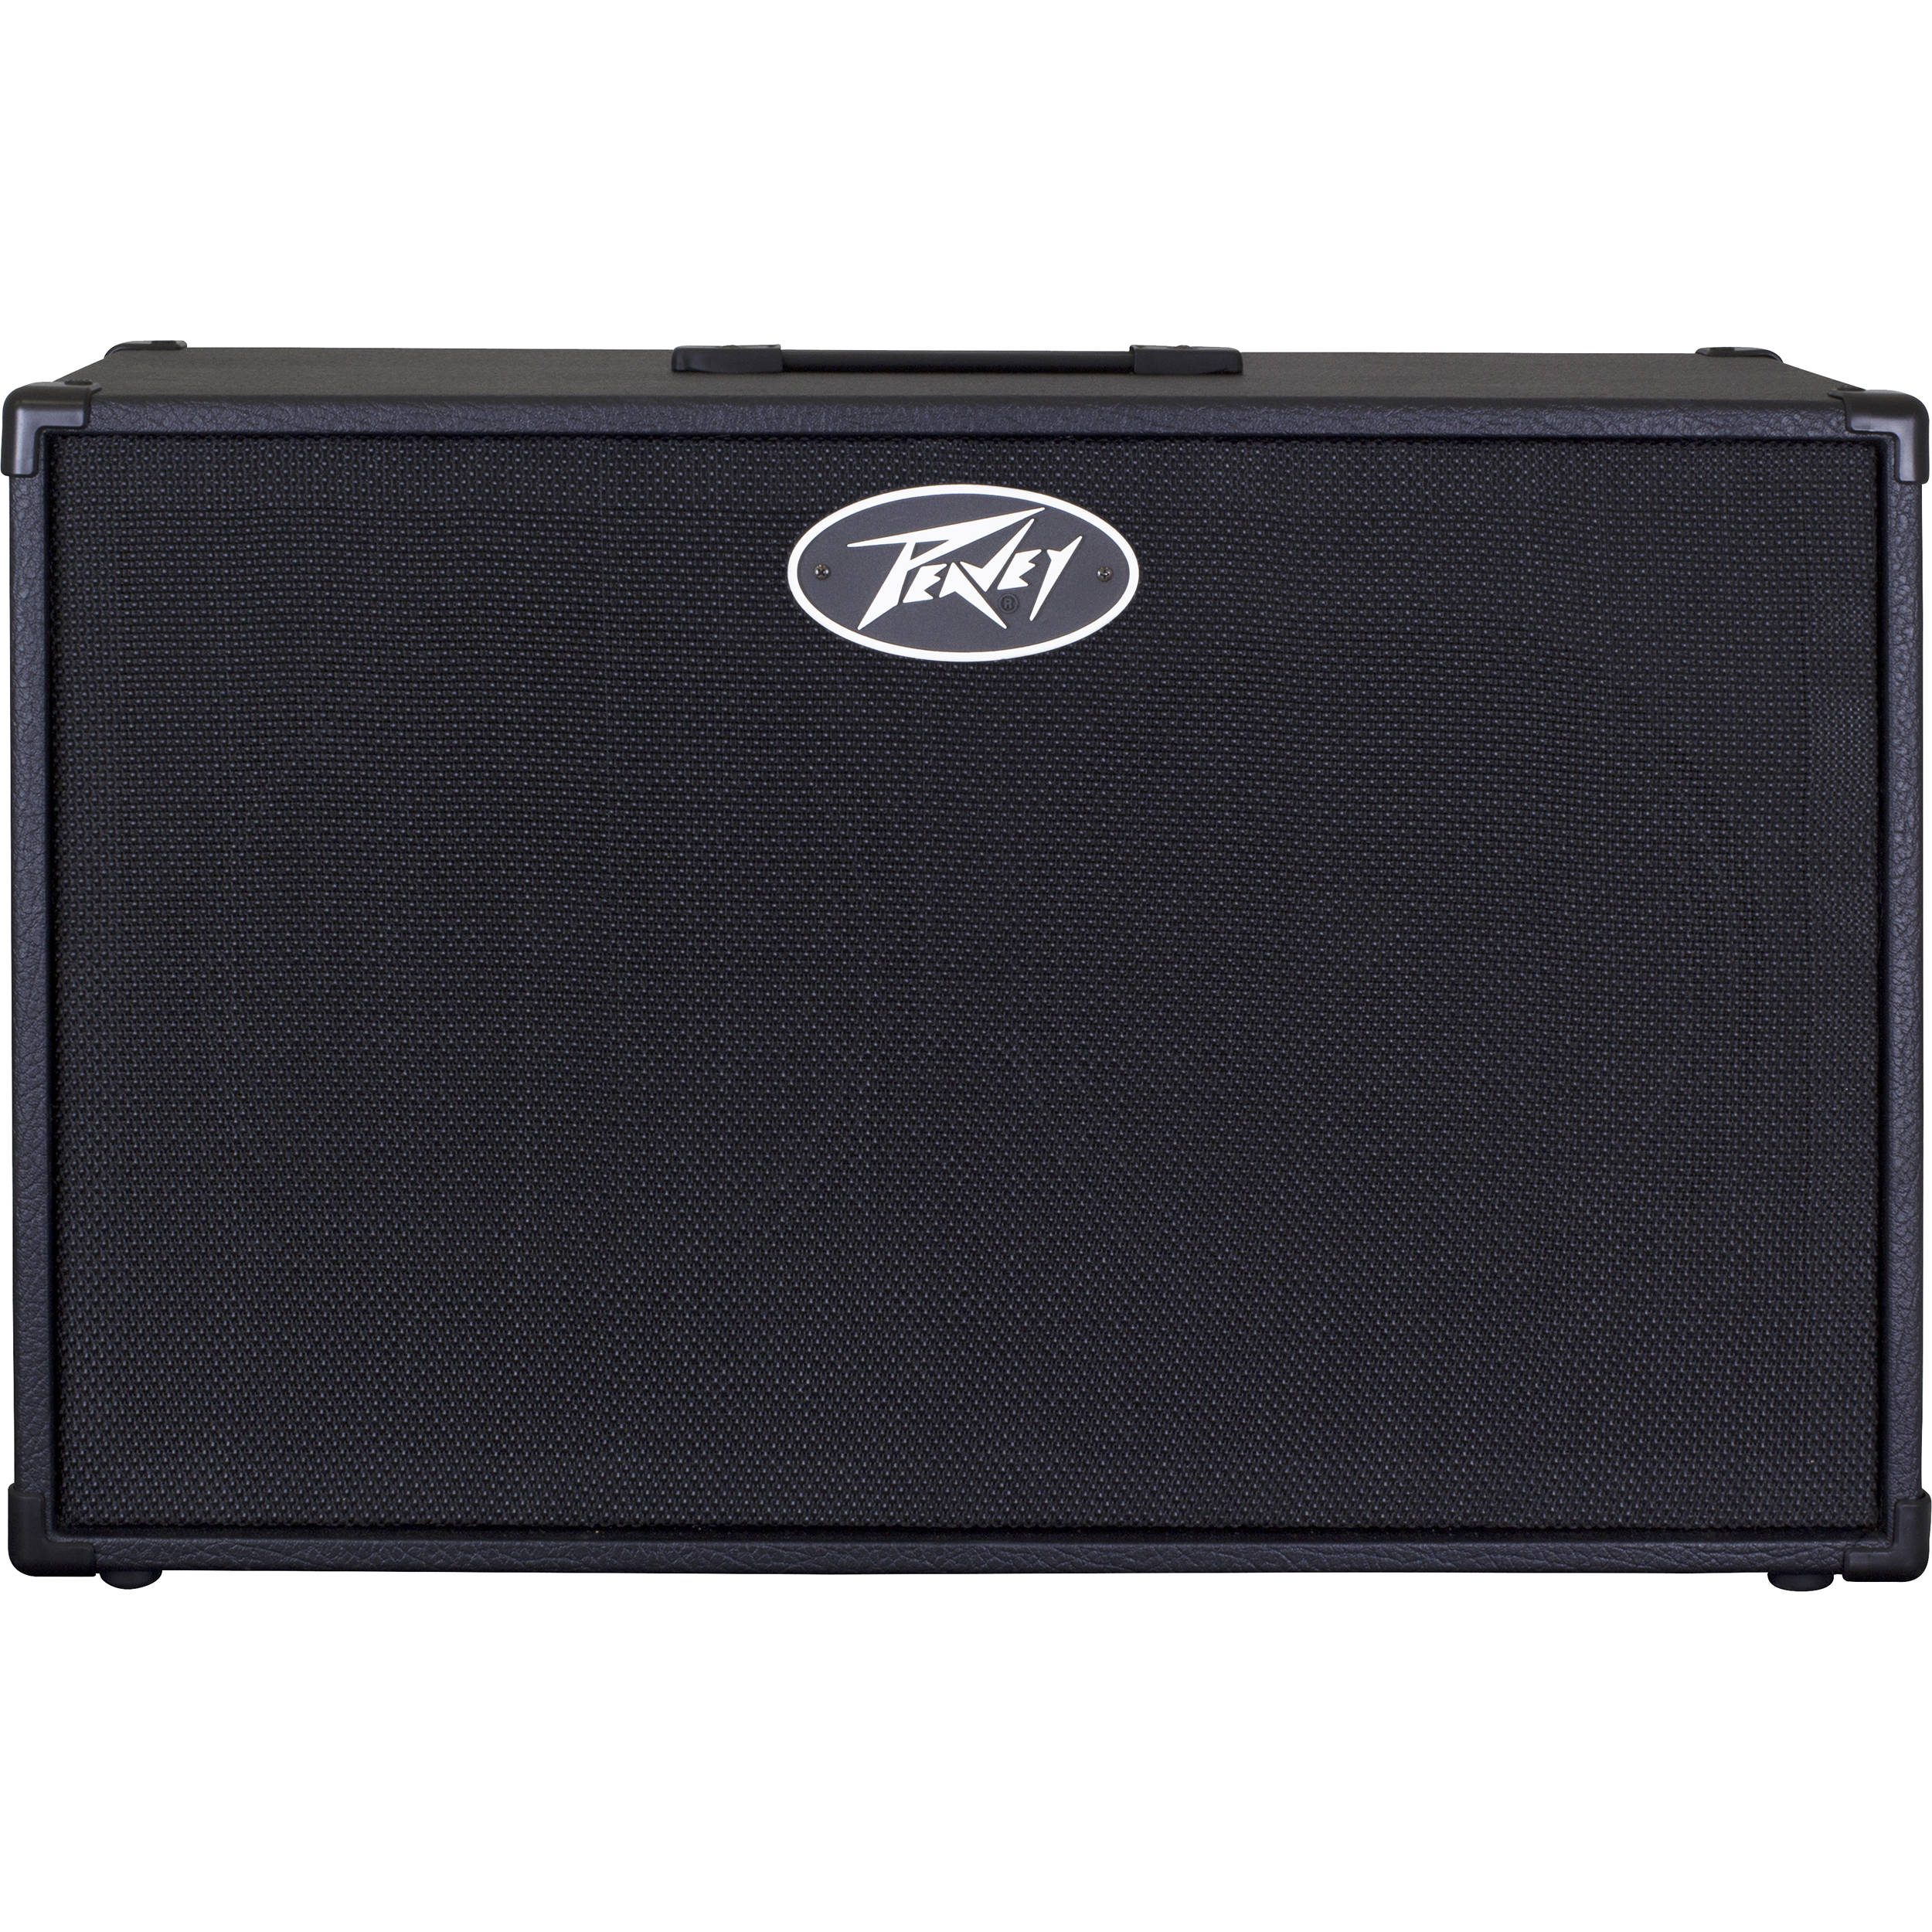 2x12 Speaker Cabinet Peavey 212 Extension Cabinet 2x12034 Guitar Cab With 80 Watts